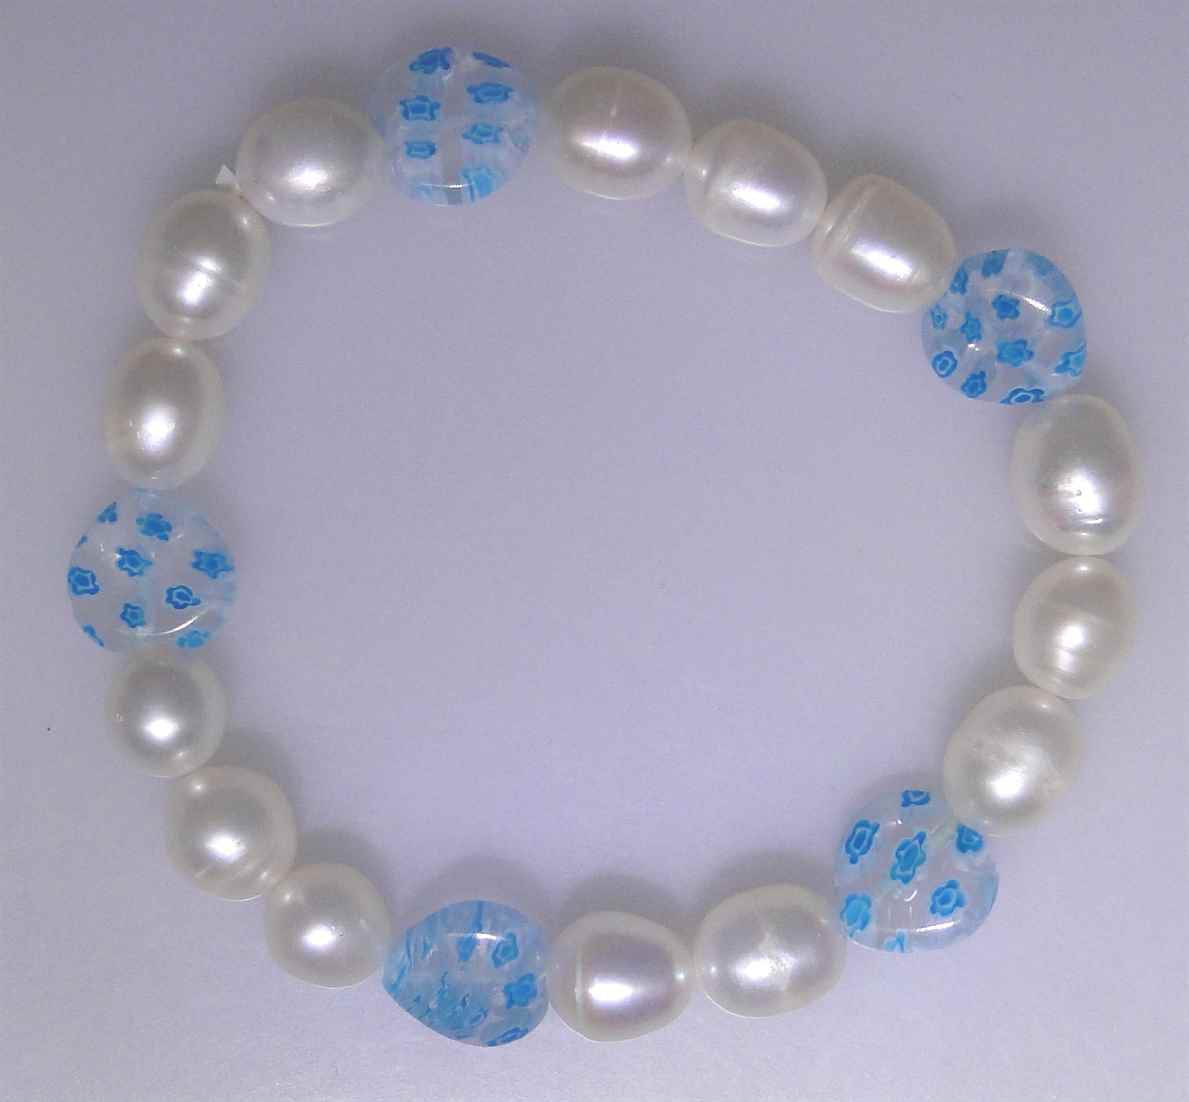 White Freshwater Pearl bracelet with glass Miliflore style beads, new